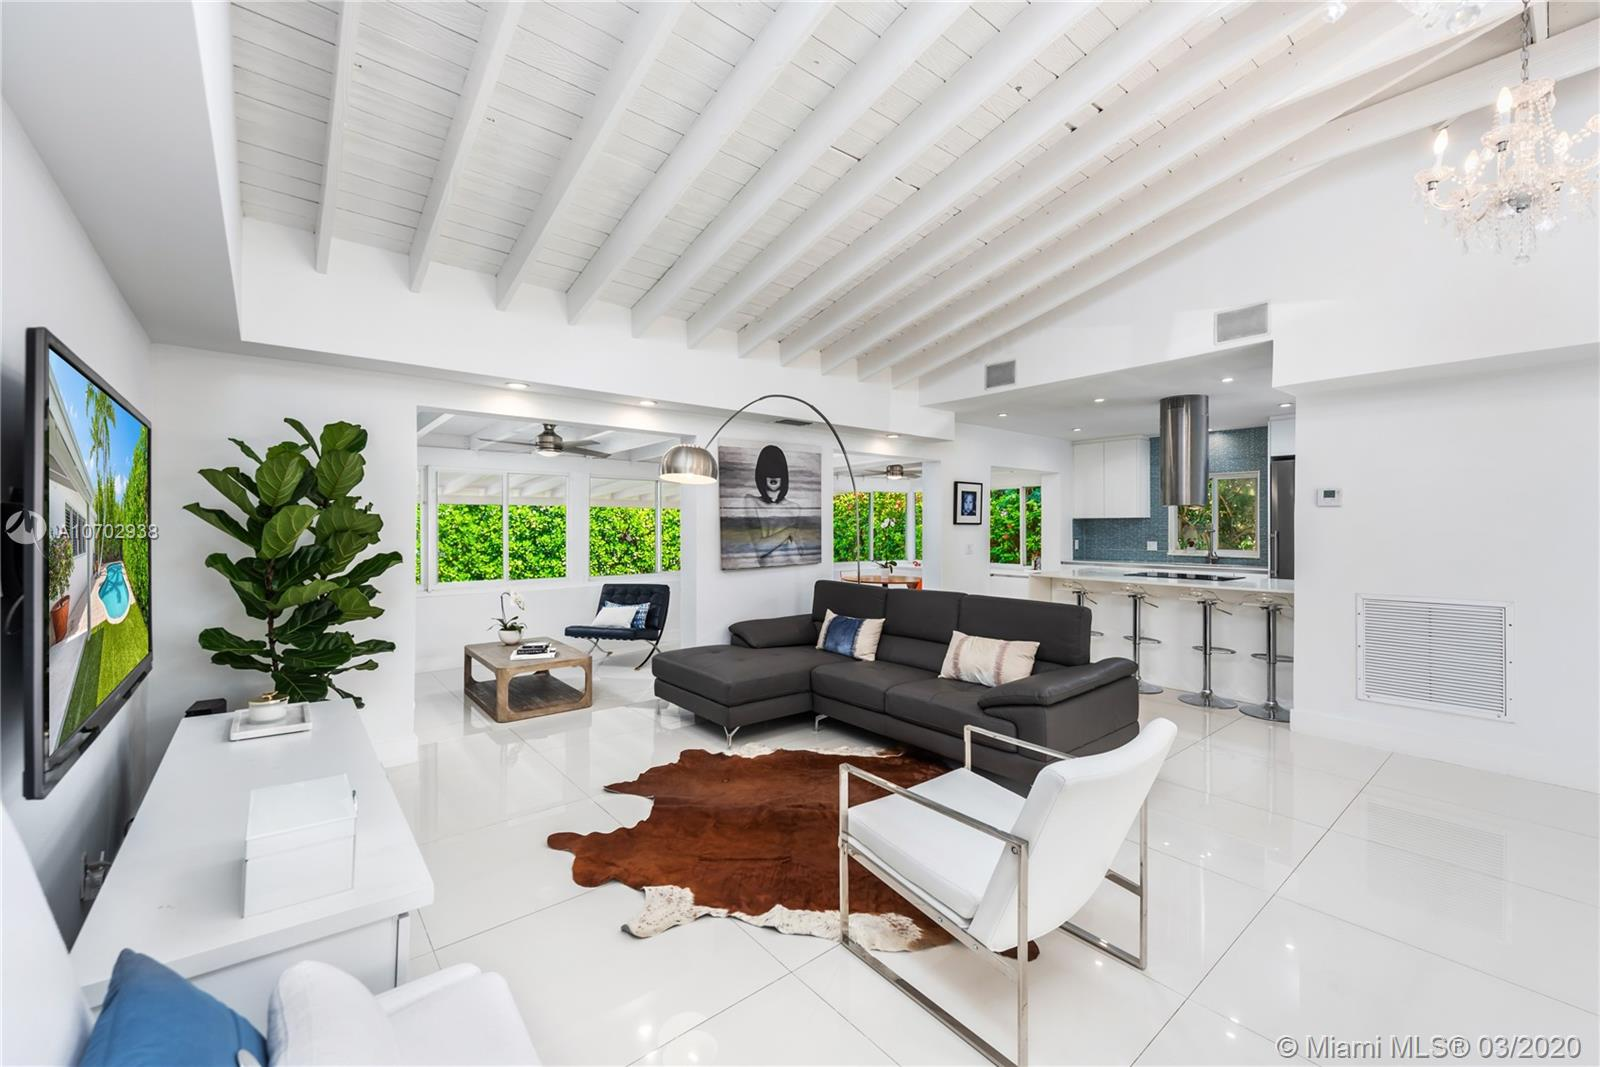 544 Allendale Rd, Key Biscayne, Florida 33149, 3 Bedrooms Bedrooms, ,2 BathroomsBathrooms,Residential,For Sale,544 Allendale Rd,A10702938